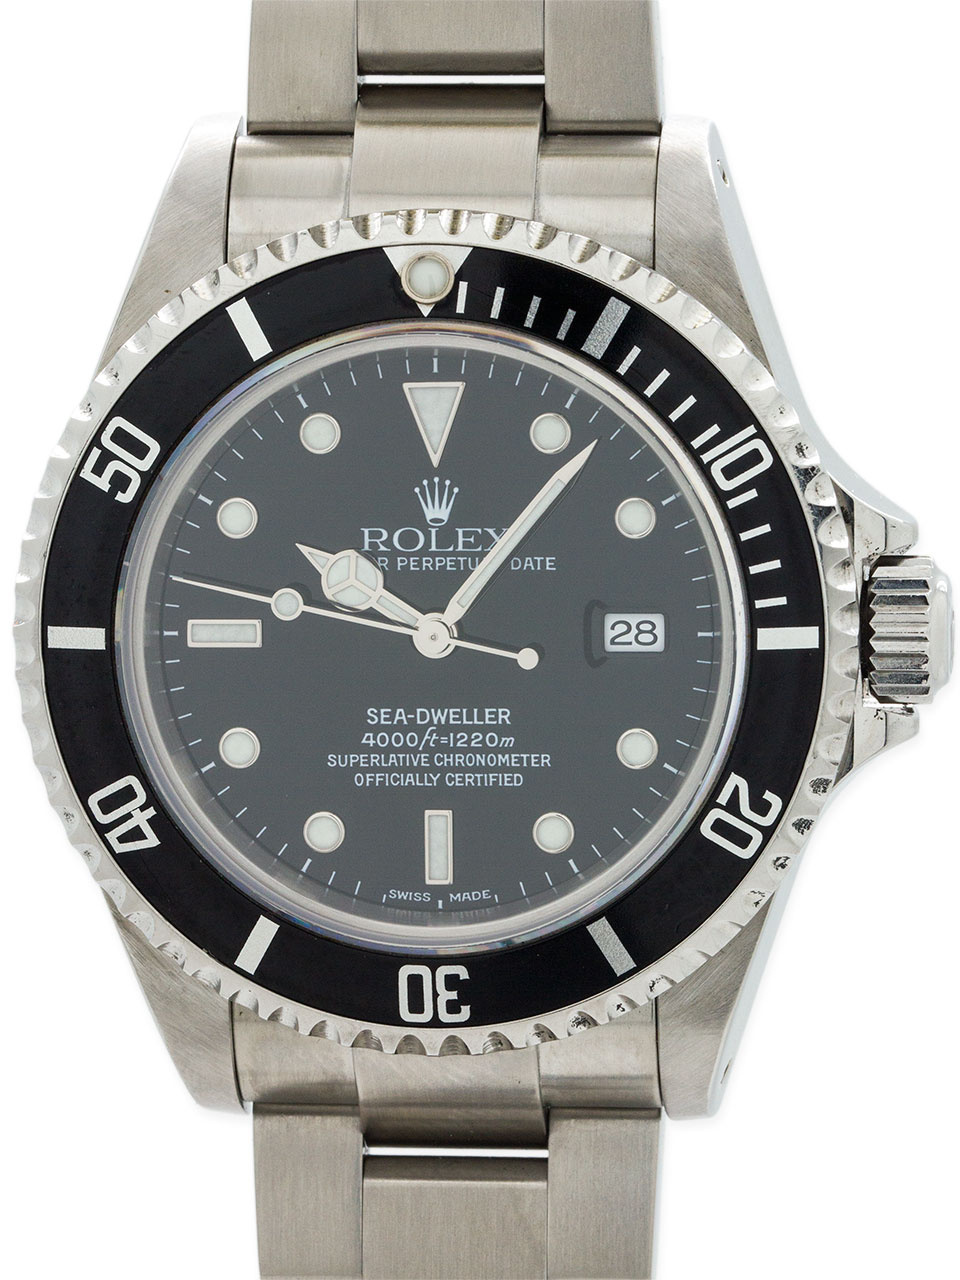 Rolex Seadweller ref 16600 circa 2002 Box & Papers